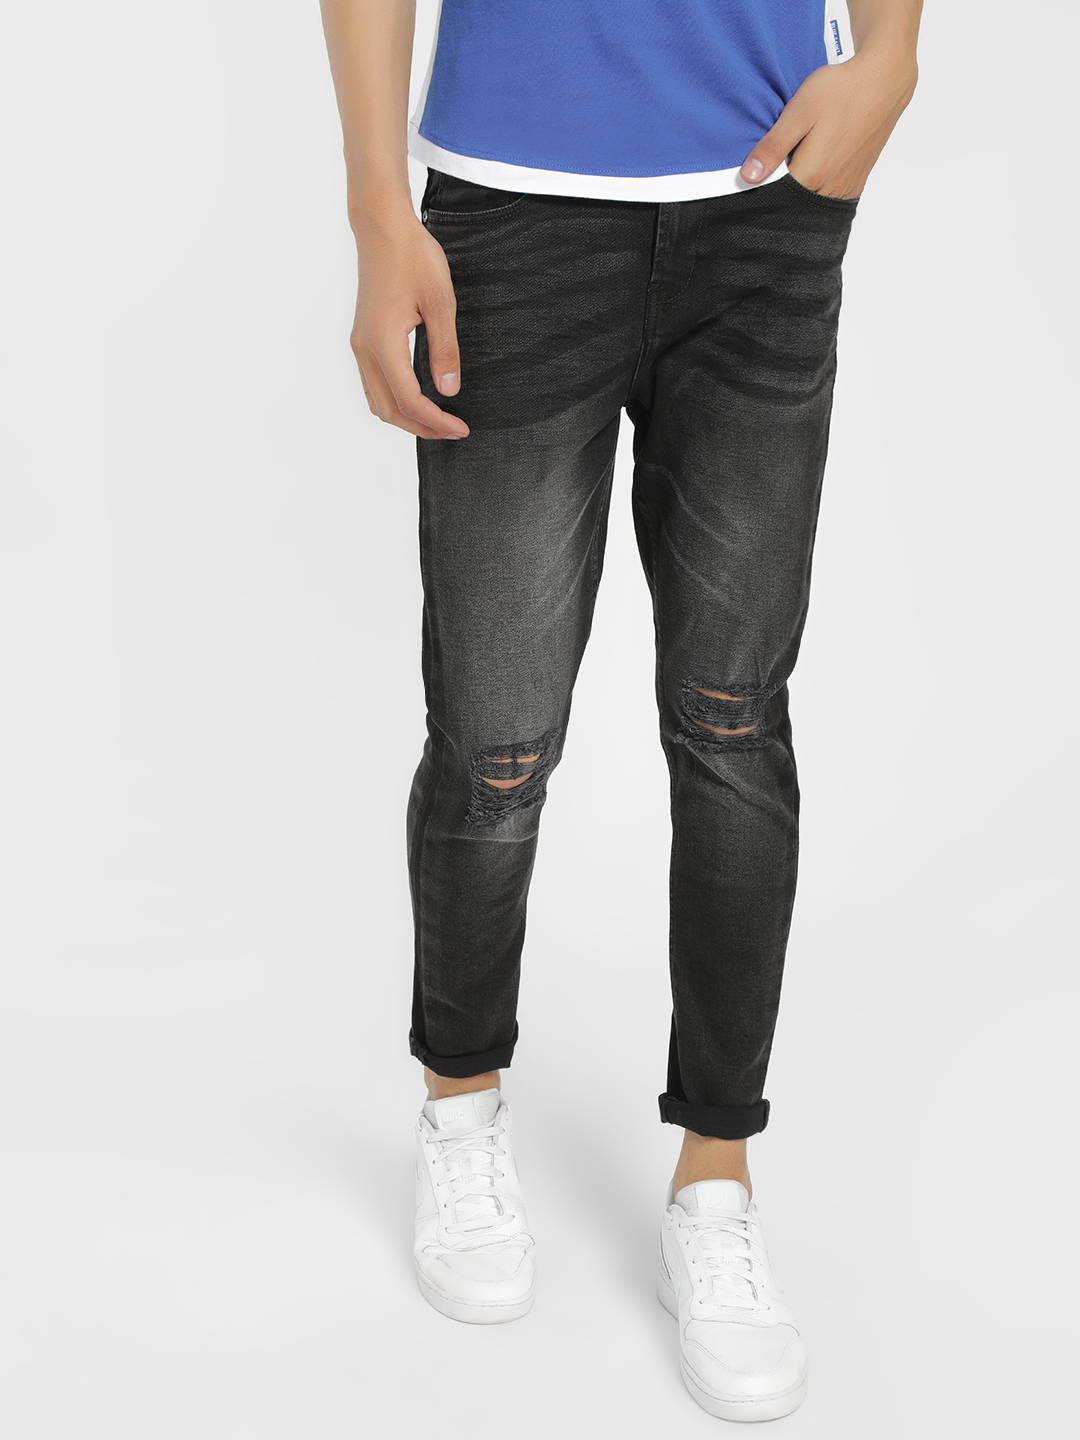 SKULT By Shahid Kapoor Grey Distressed Mid Wash Slim Jeans 1